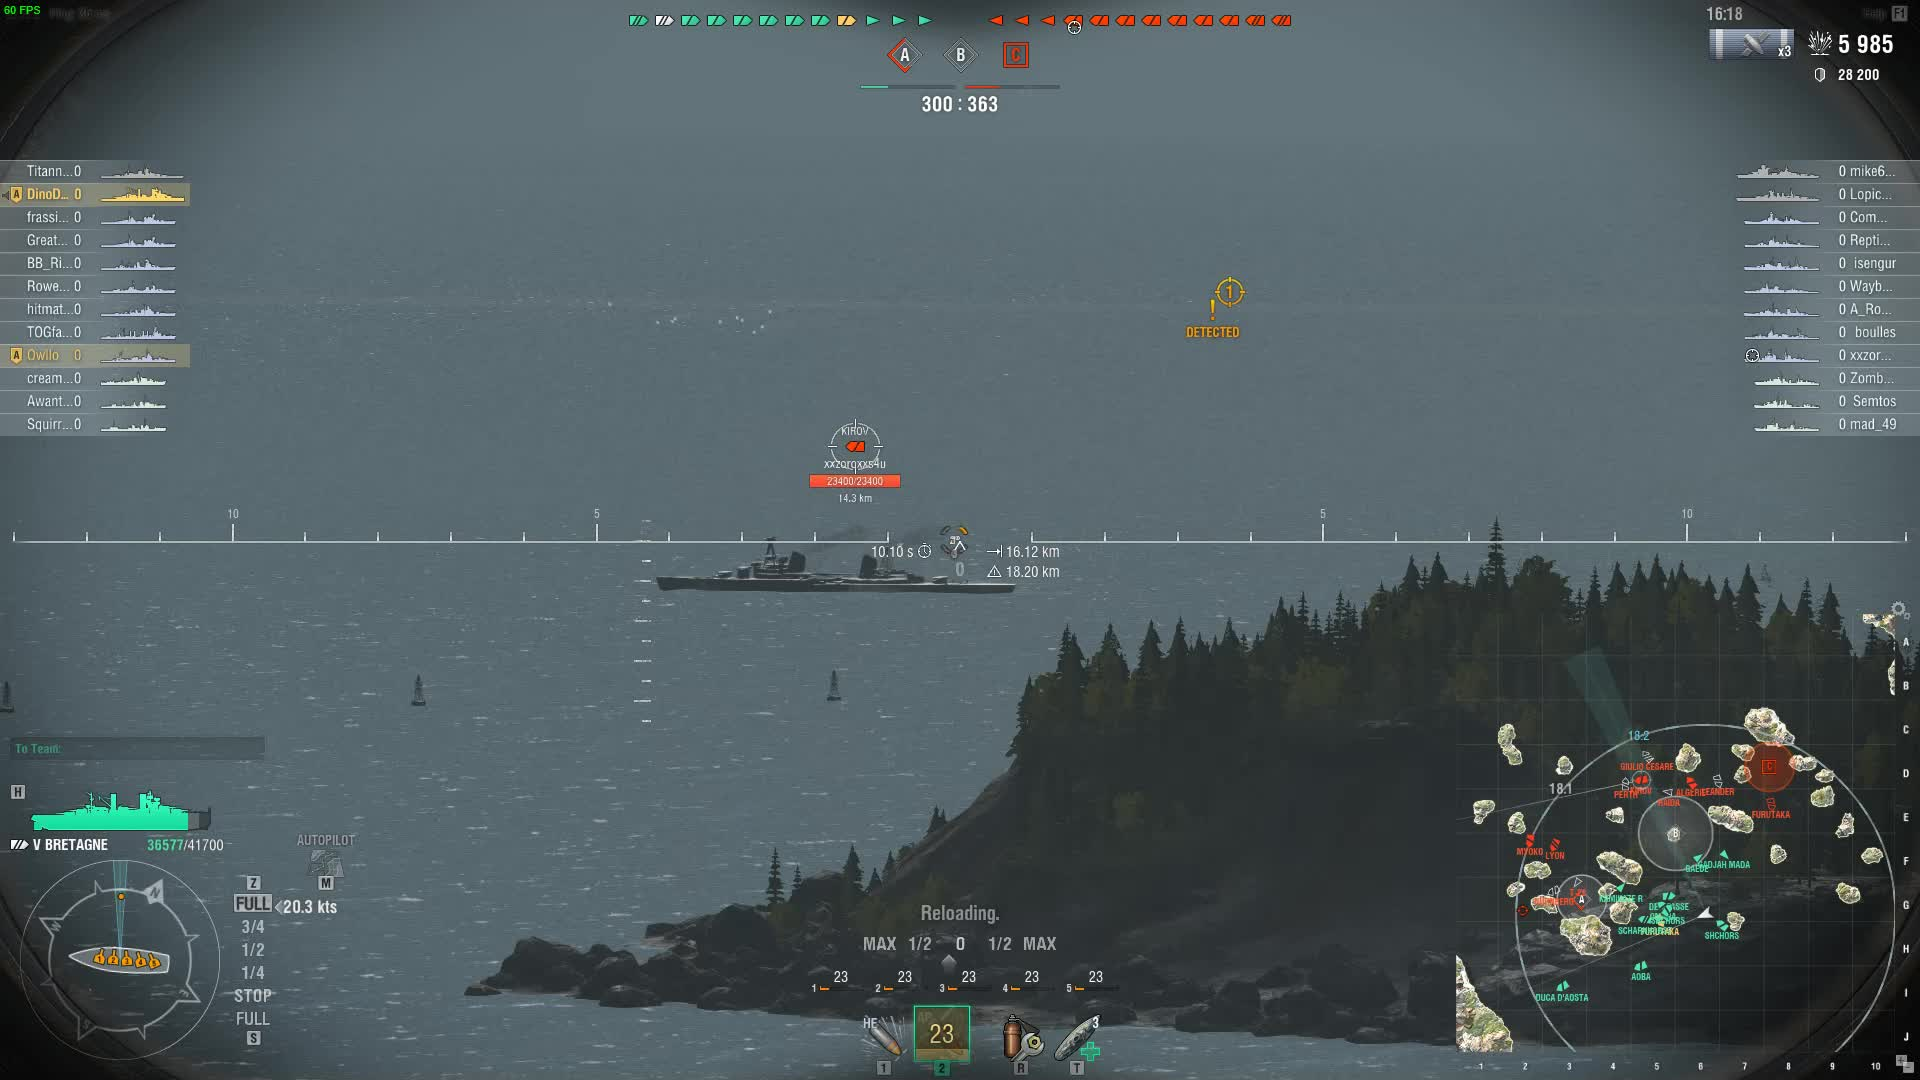 worldofwarships, vlc-record-2018-07-14-17h32m57s-World of Warships 2018.07.14 - 15.42.43.13.DVR.mp4- GIFs